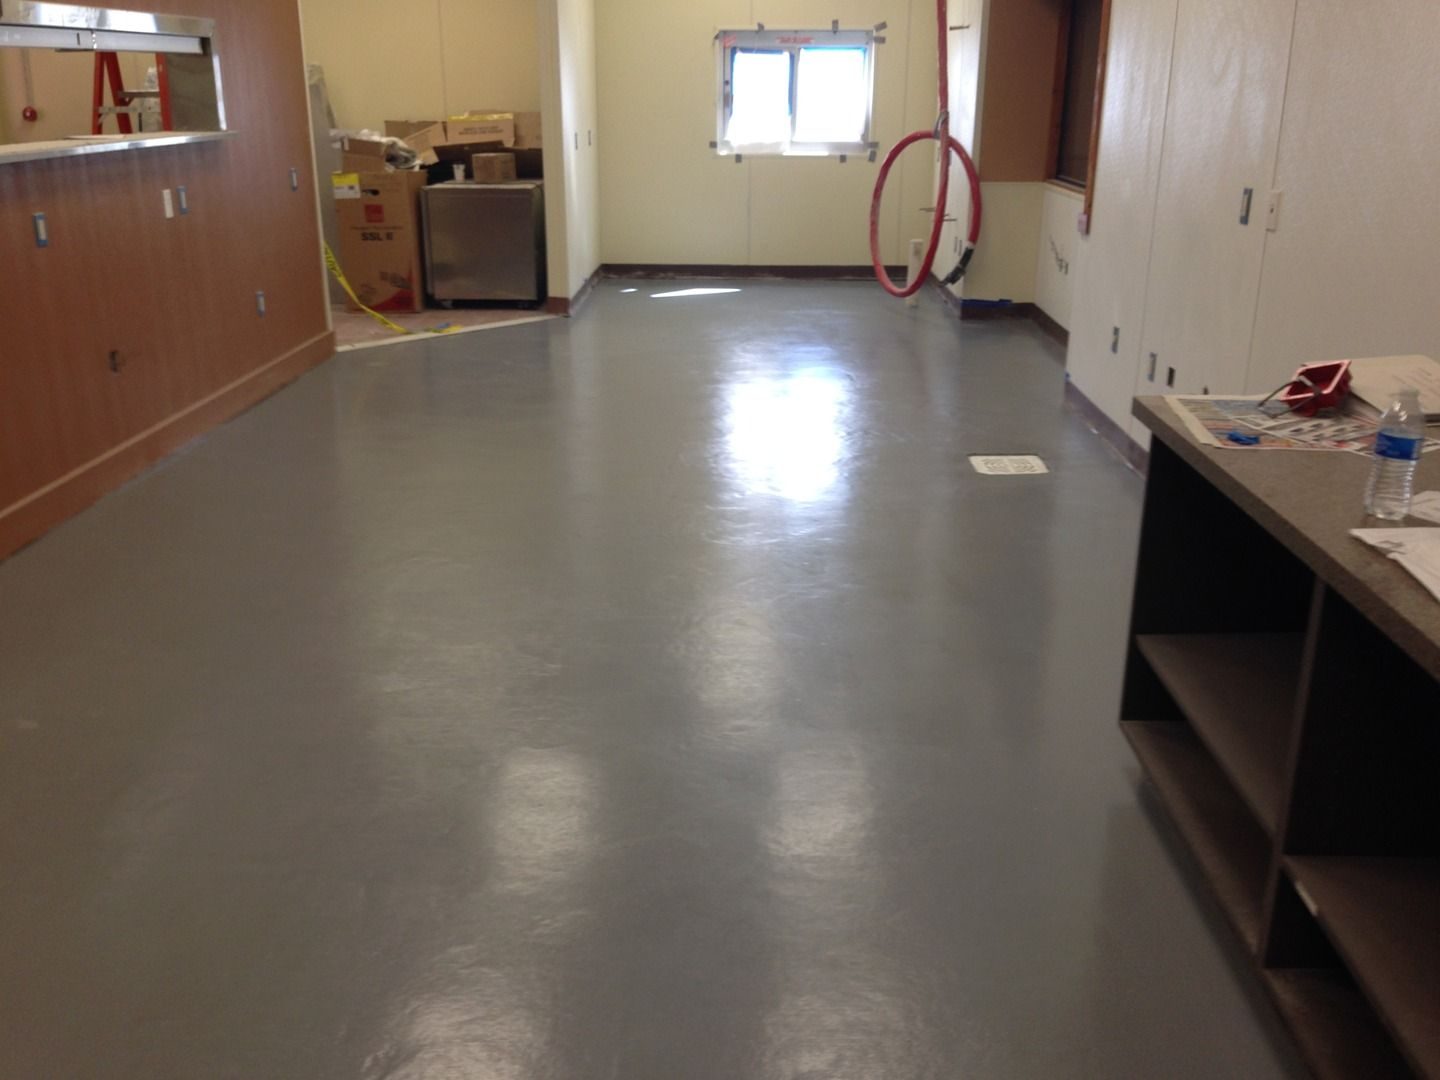 Astonishing Anti Slip Flooring For Commercial Kitchen Ideas For The Home Interior And Landscaping Synyenasavecom